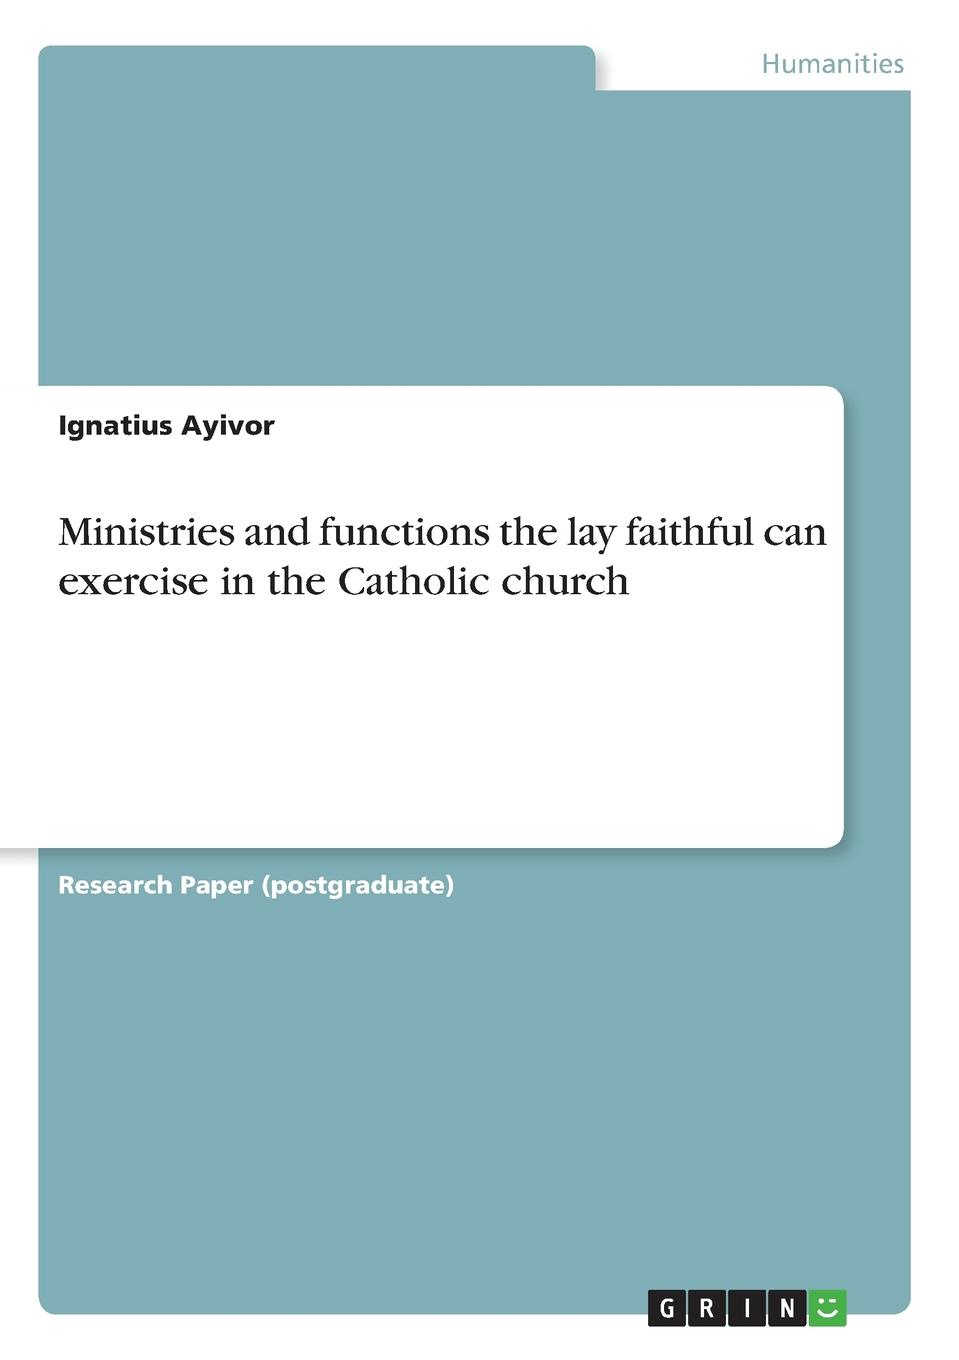 Ignatius Ayivor Ministries and functions the lay faithful can exercise in the Catholic church the church thirroul